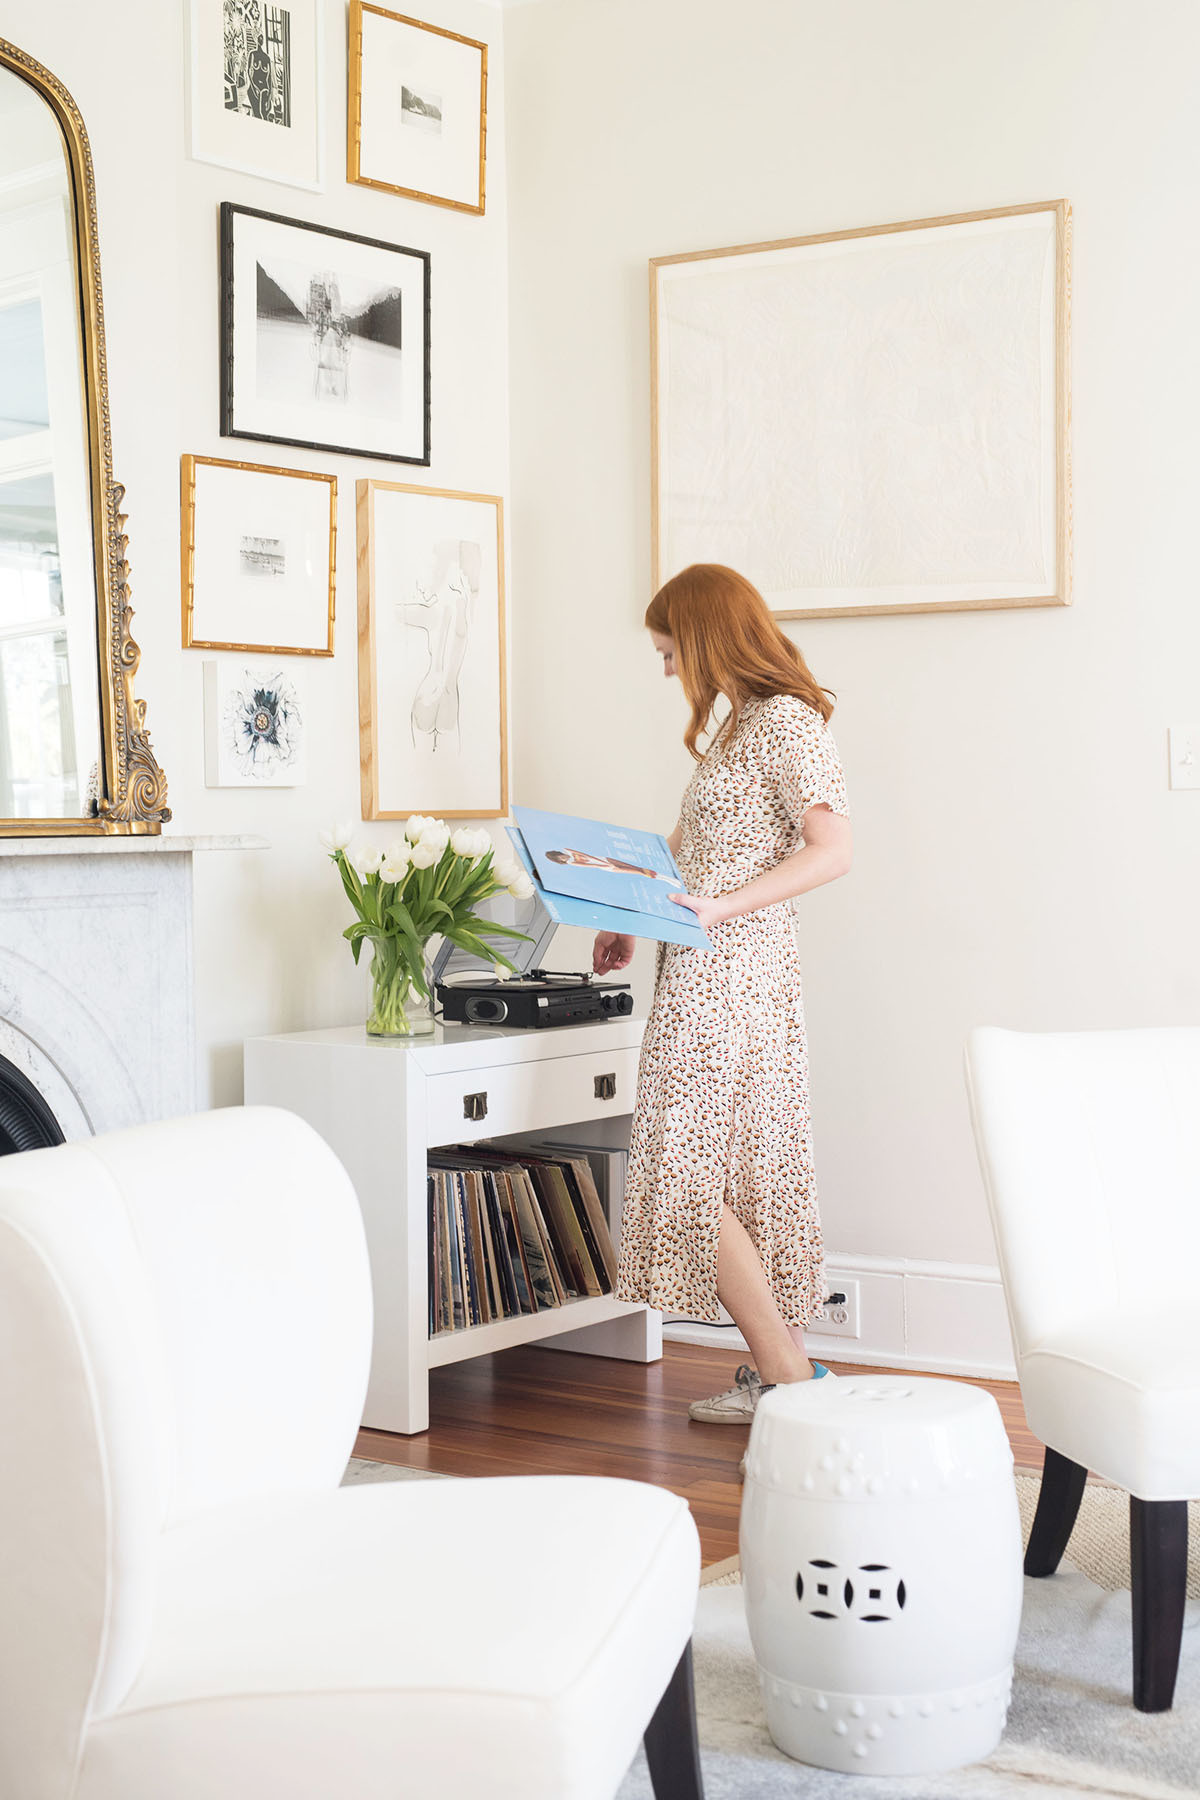 The couple spend their downtime entertaining at home, or listening to records in the traditionally southern sitting room.Crosley Record Player |Worlds AwaySide Table |Wayfair Stool |Scott Antique Market Armchairs, upholstered inSchumacher Linen.